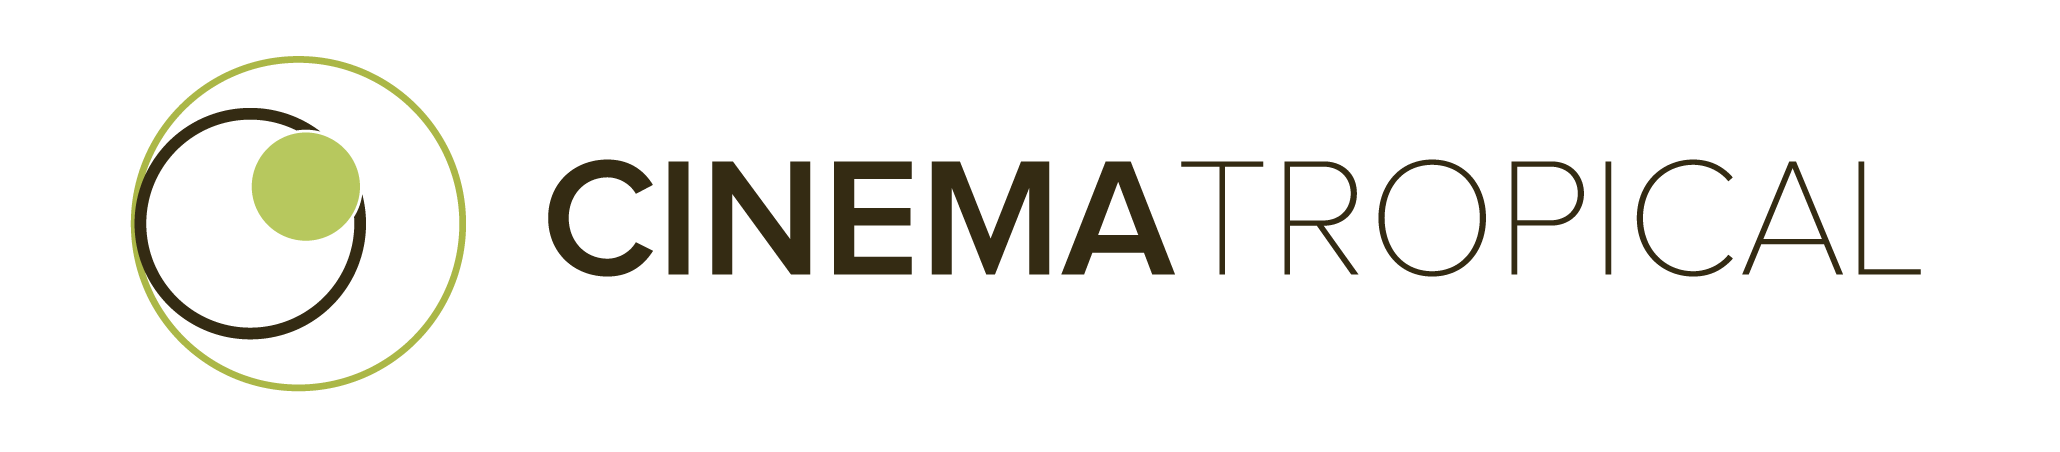 CinemaTropicalLogo17.png